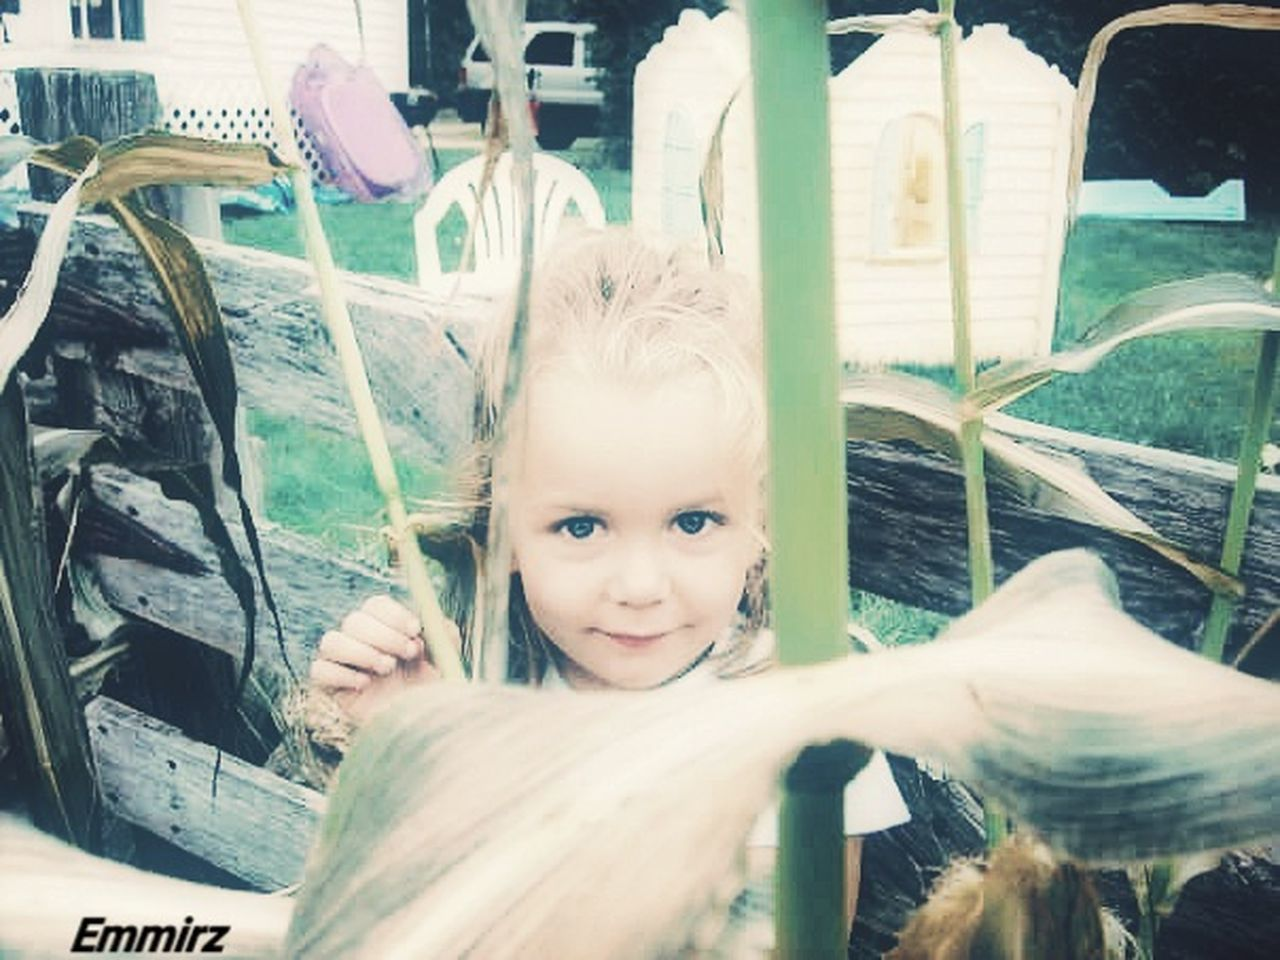 Mygirl♥ Country Living Growing Food Growing Vegtables Blond Hair Childhood Corn On The Cob Peek A Boo Wooden Fence